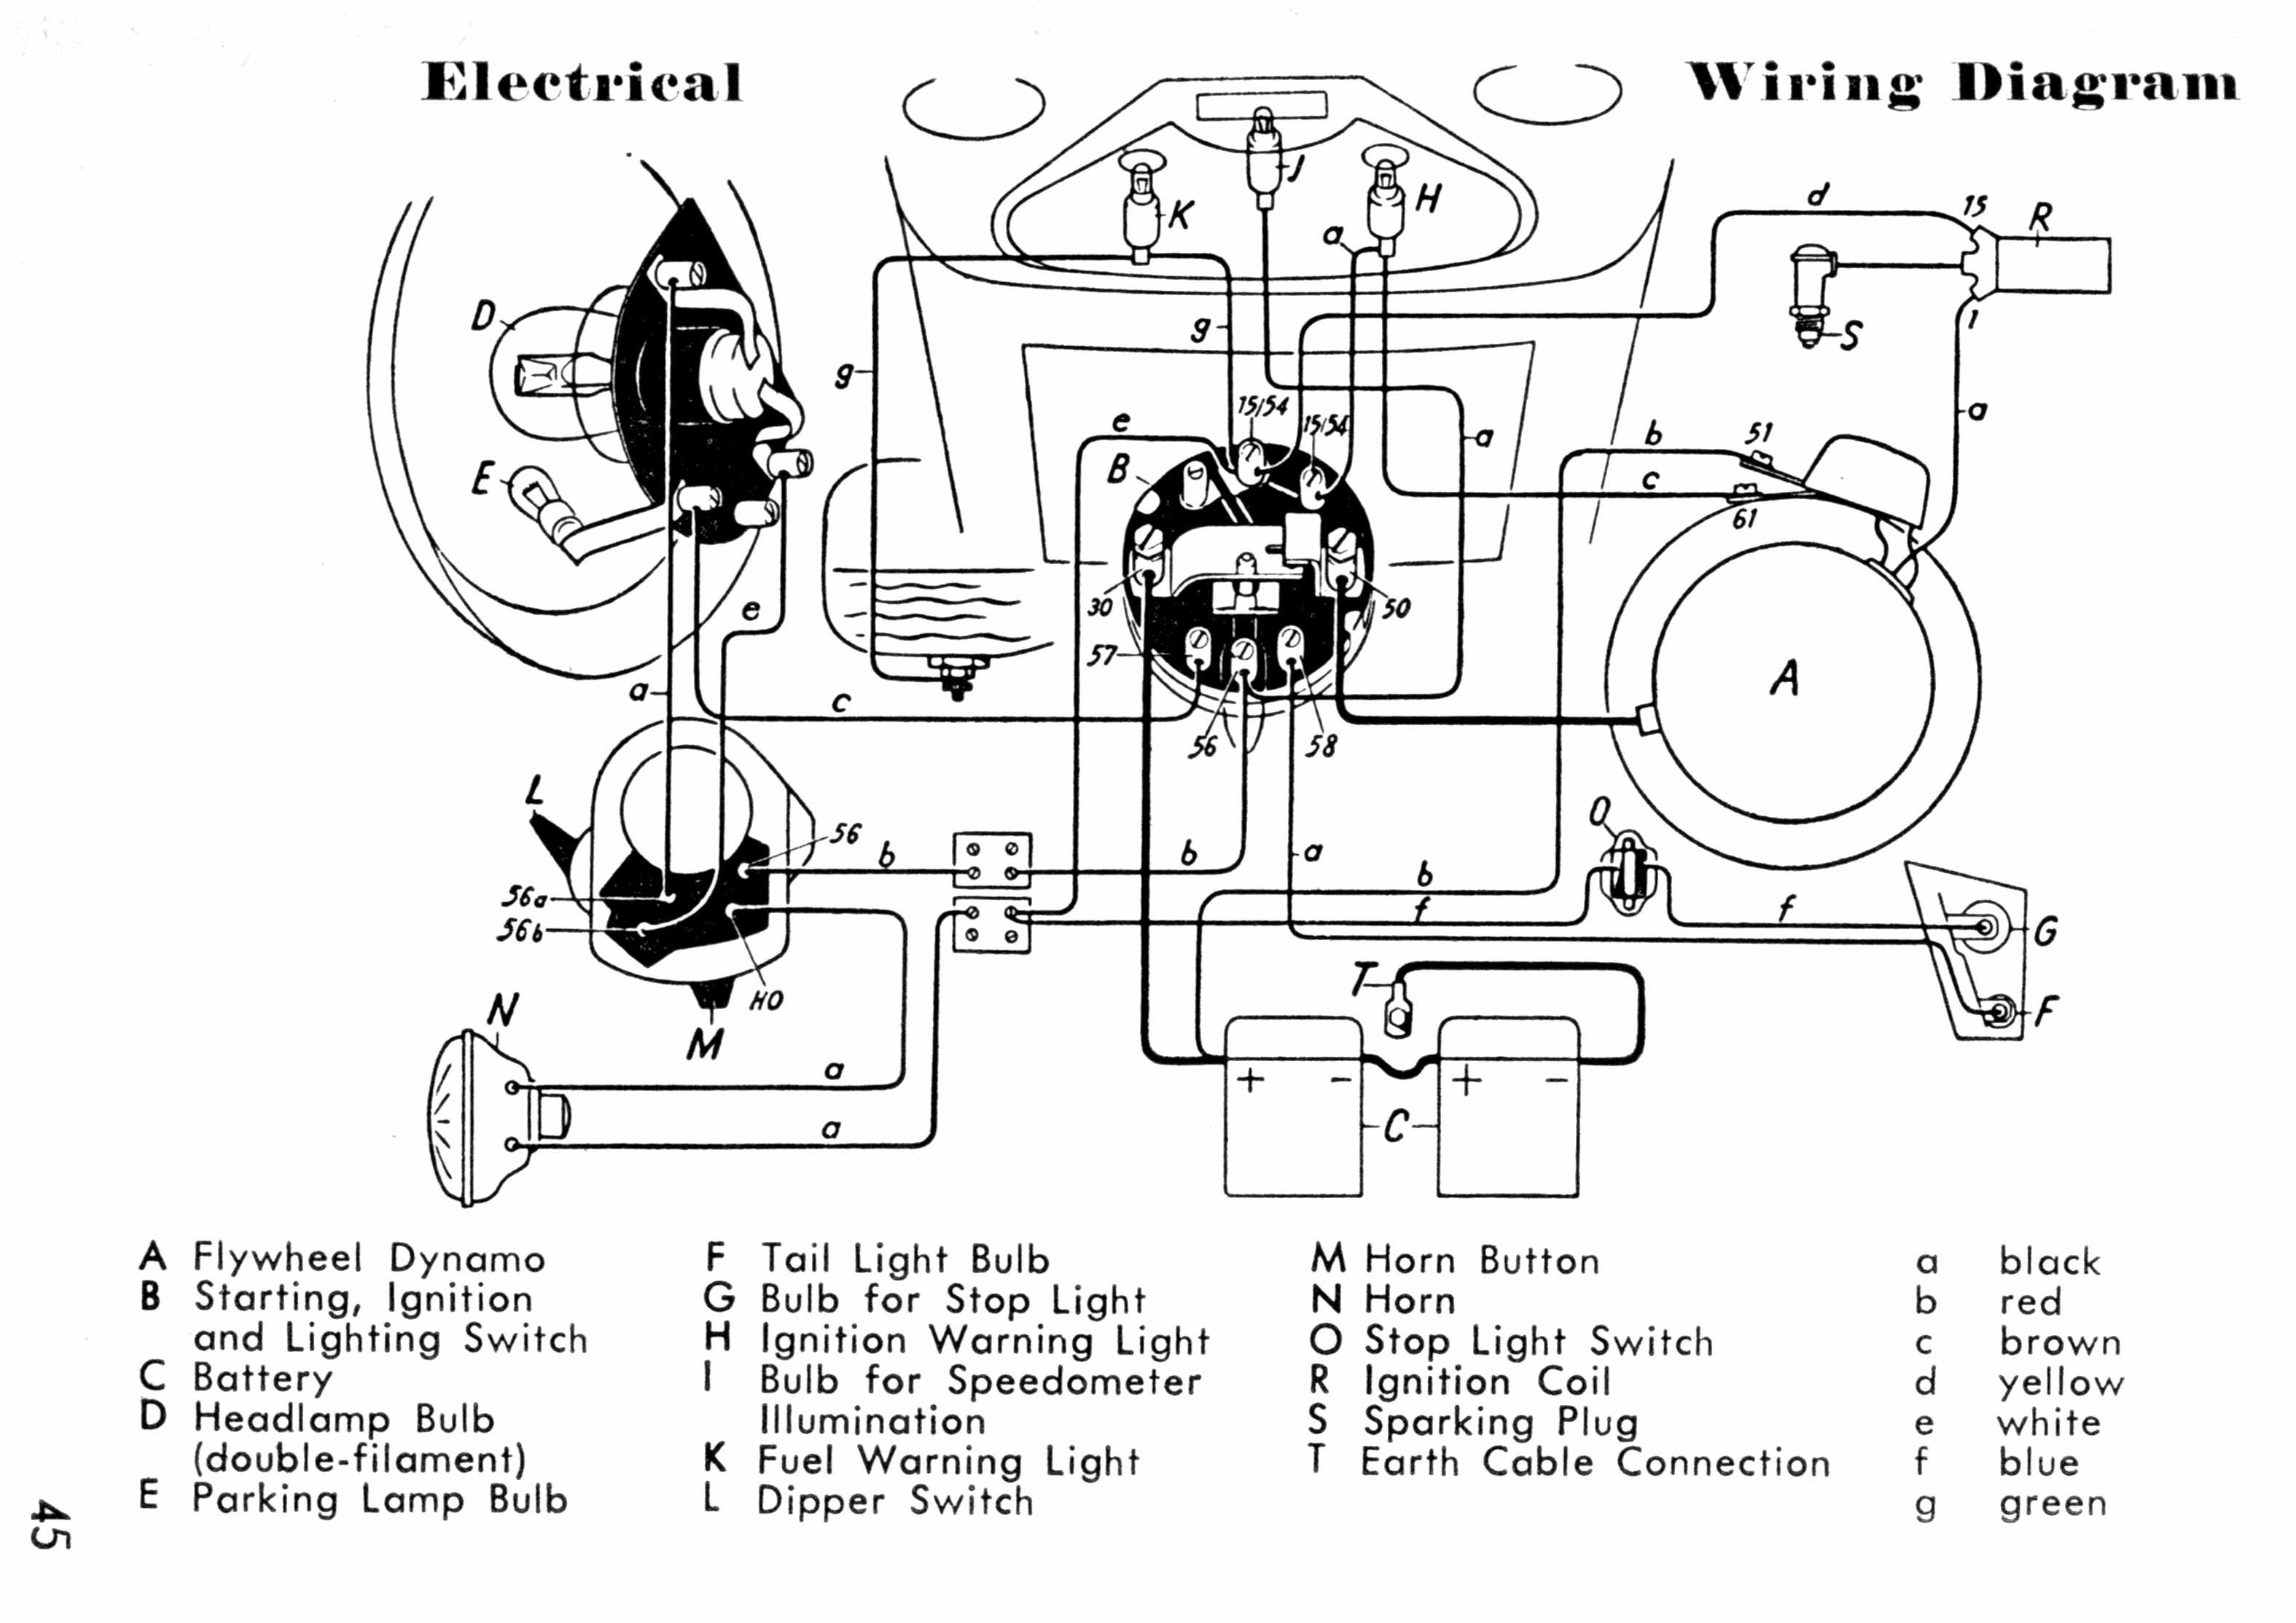 Bad Boy Buggies Battery Wiring Diagram on kawasaki battery wiring diagram, gem battery wiring diagram, yamaha battery wiring diagram, club car battery wiring diagram, e-z-go battery wiring diagram, kenworth battery wiring diagram, mitsubishi battery wiring diagram, john deere battery wiring diagram, nissan battery wiring diagram, jayco battery wiring diagram,